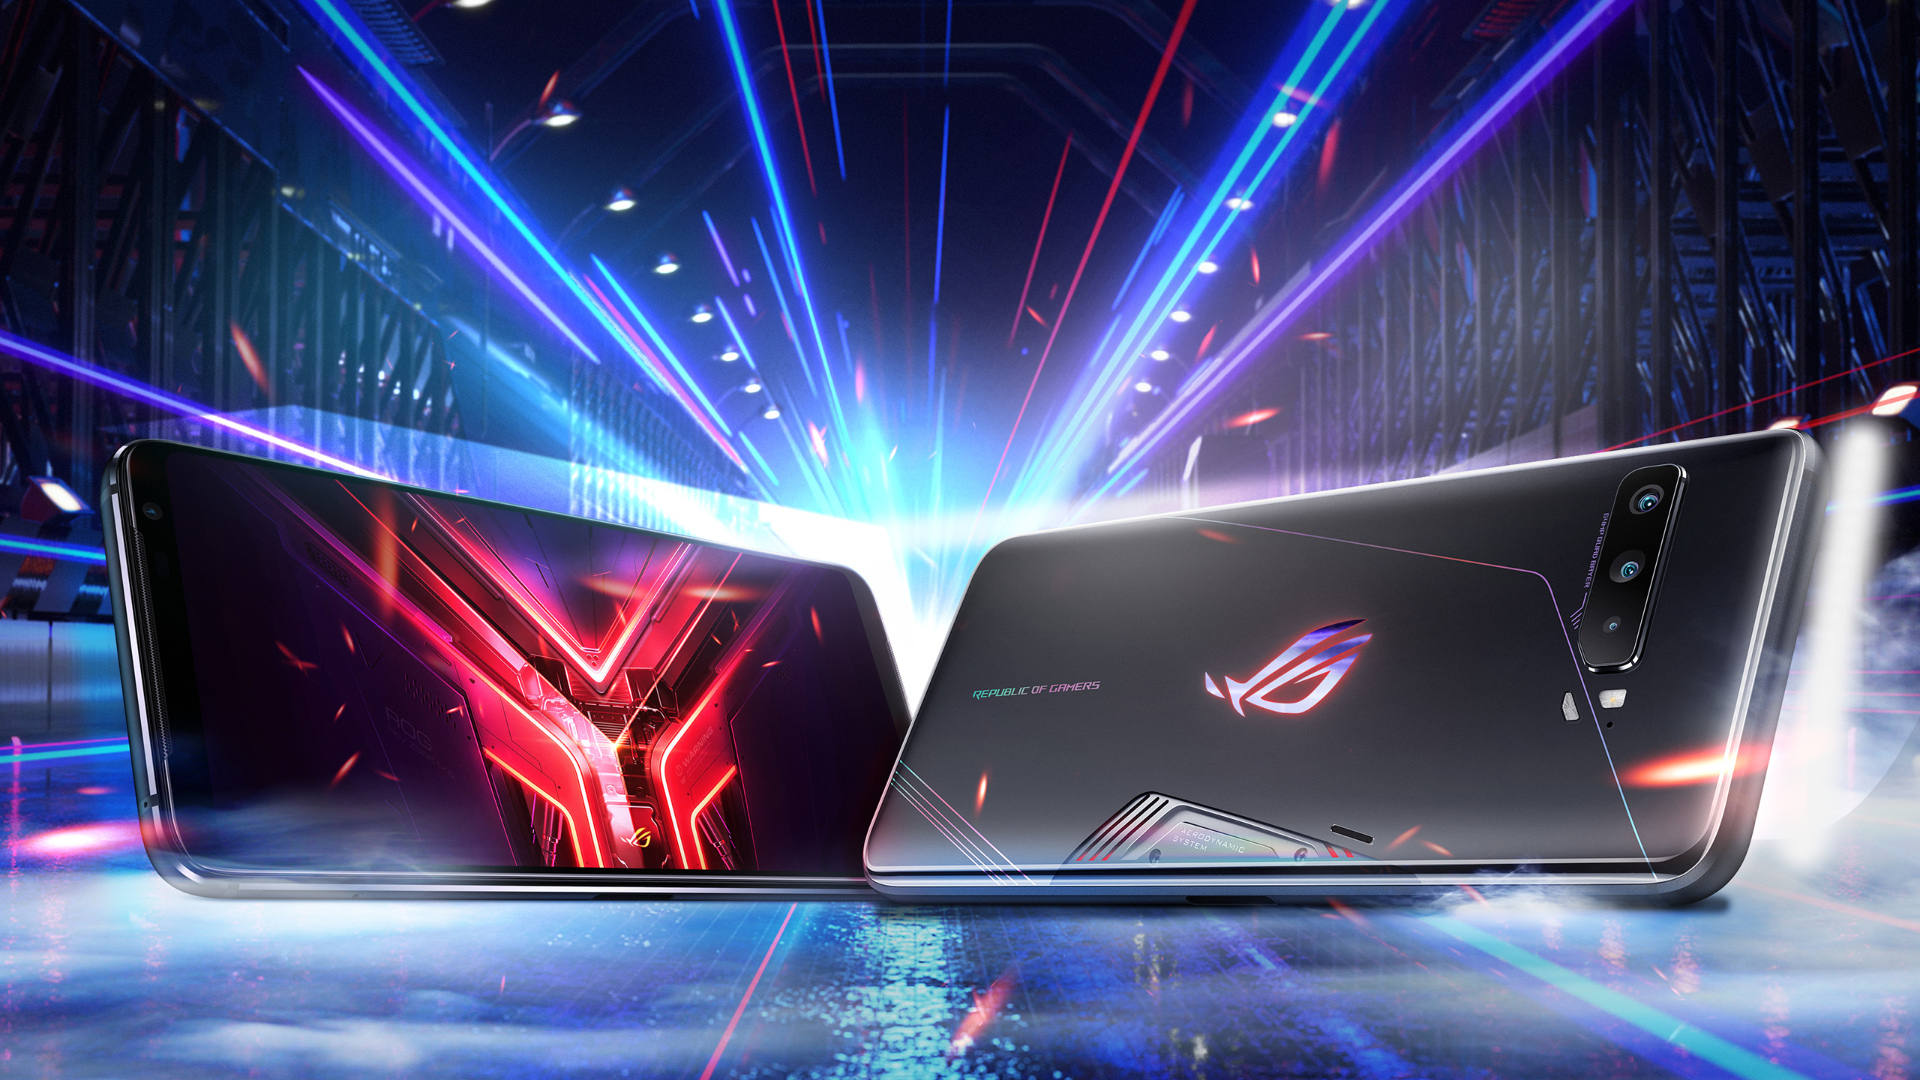 The Asus ROG Phone 3 is packed to the brim with gamer-focused features